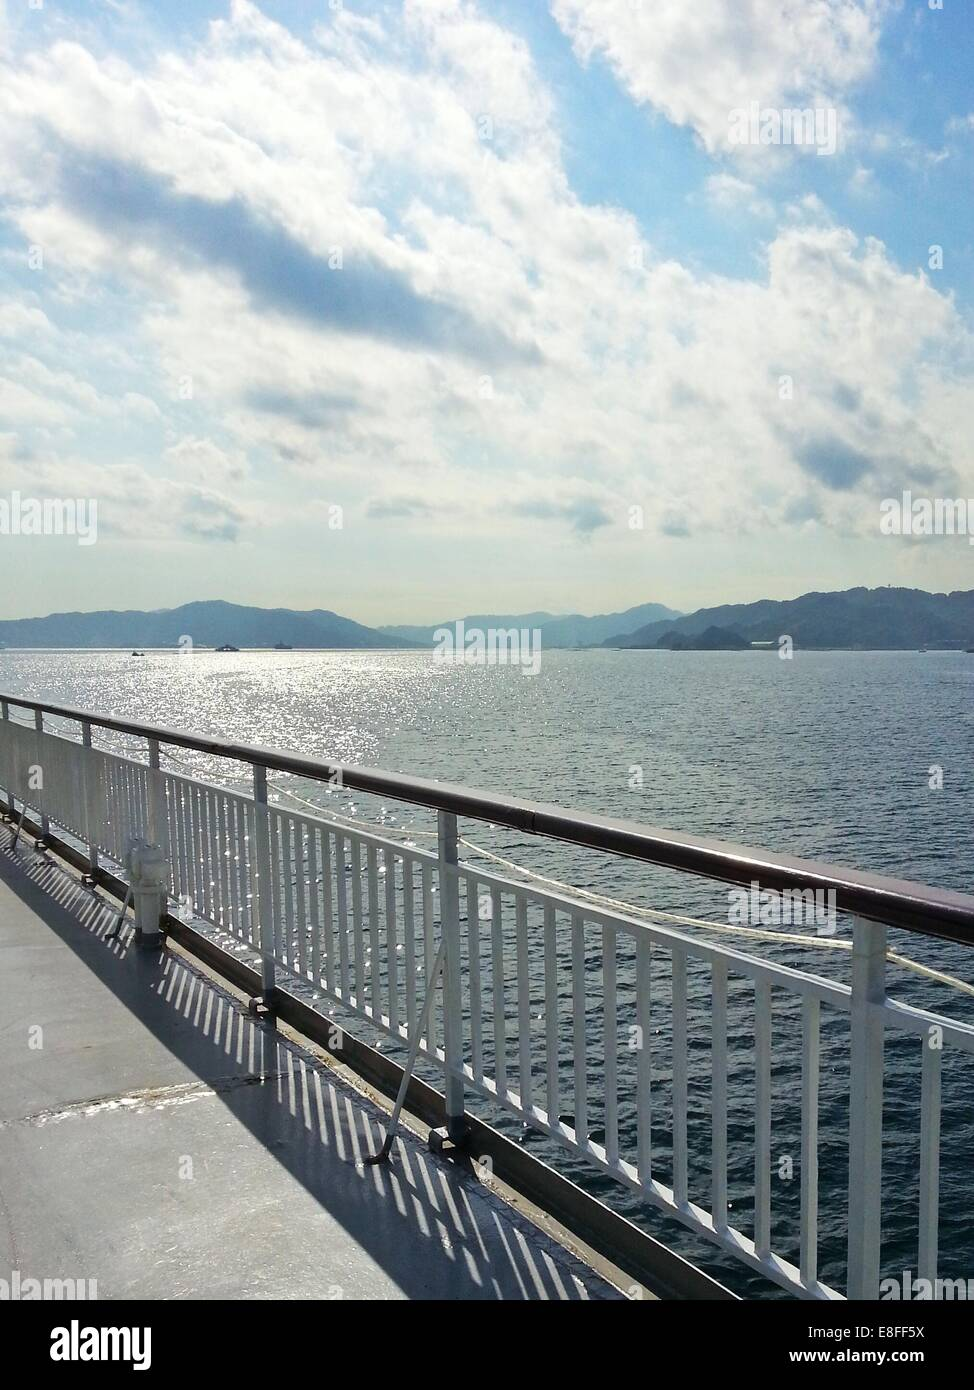 View of the sea from ship - Stock Image